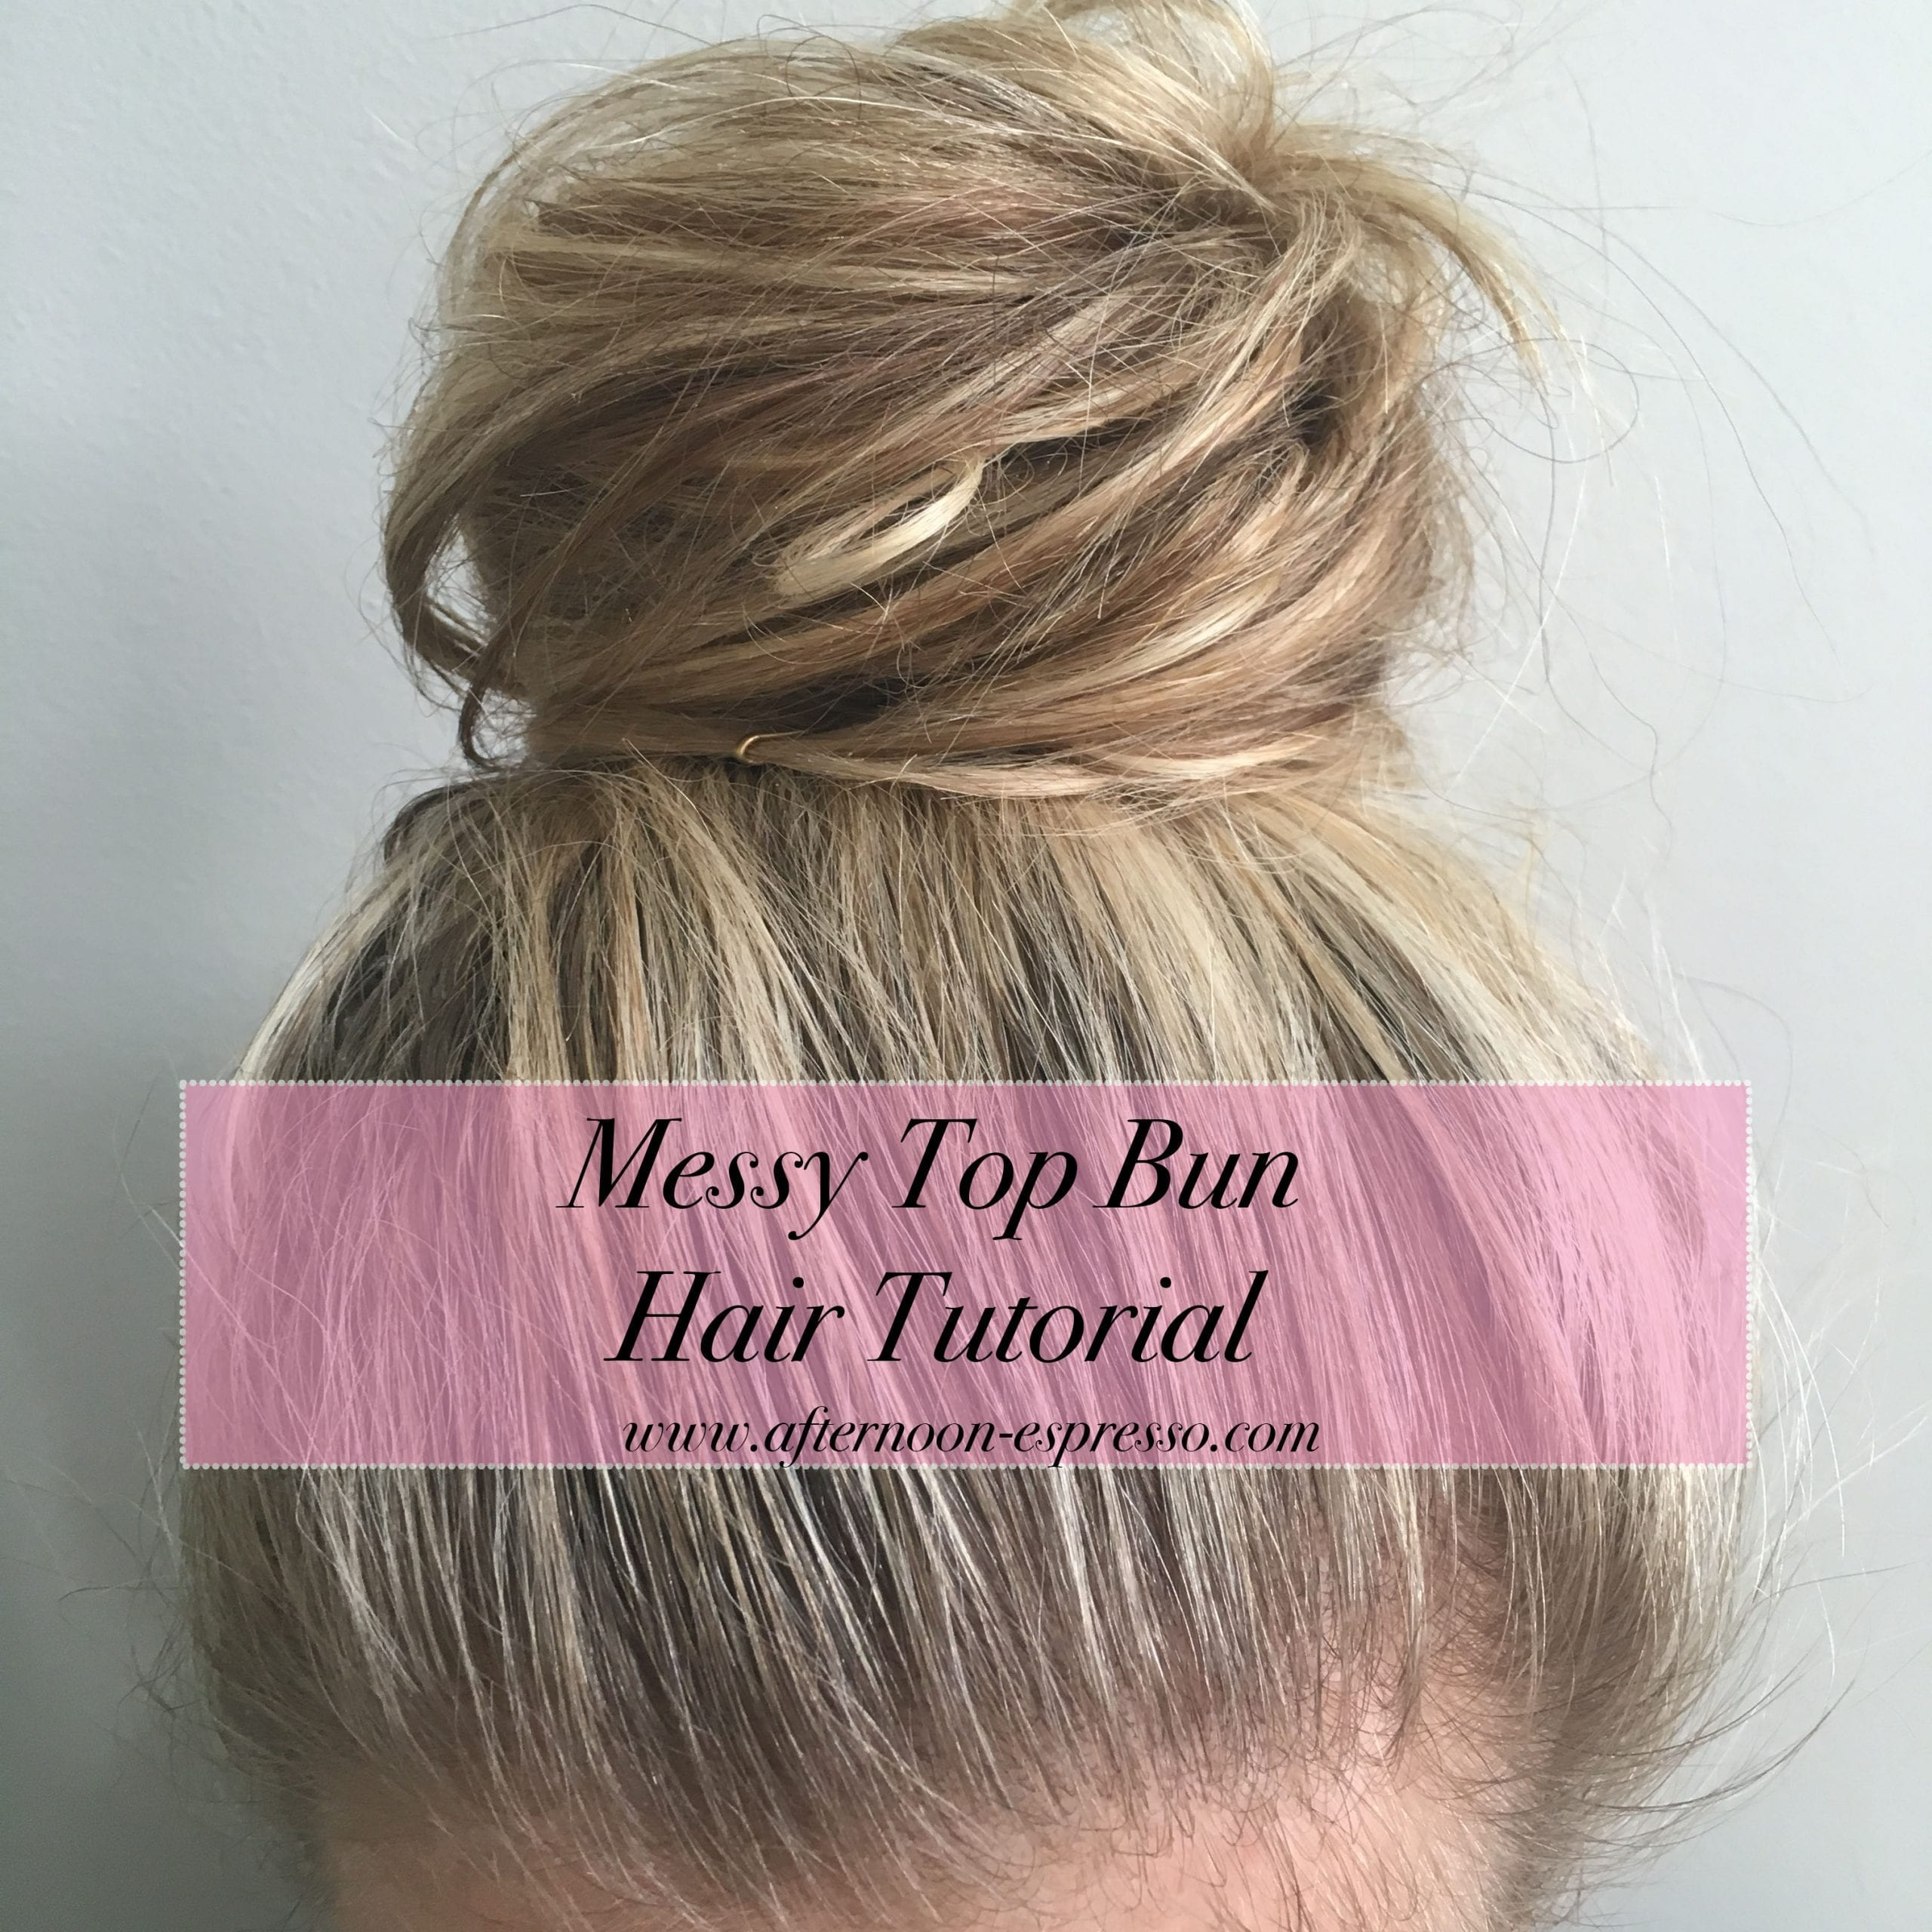 14 simple hair bun tutorial to keep you look chic in lazy days.